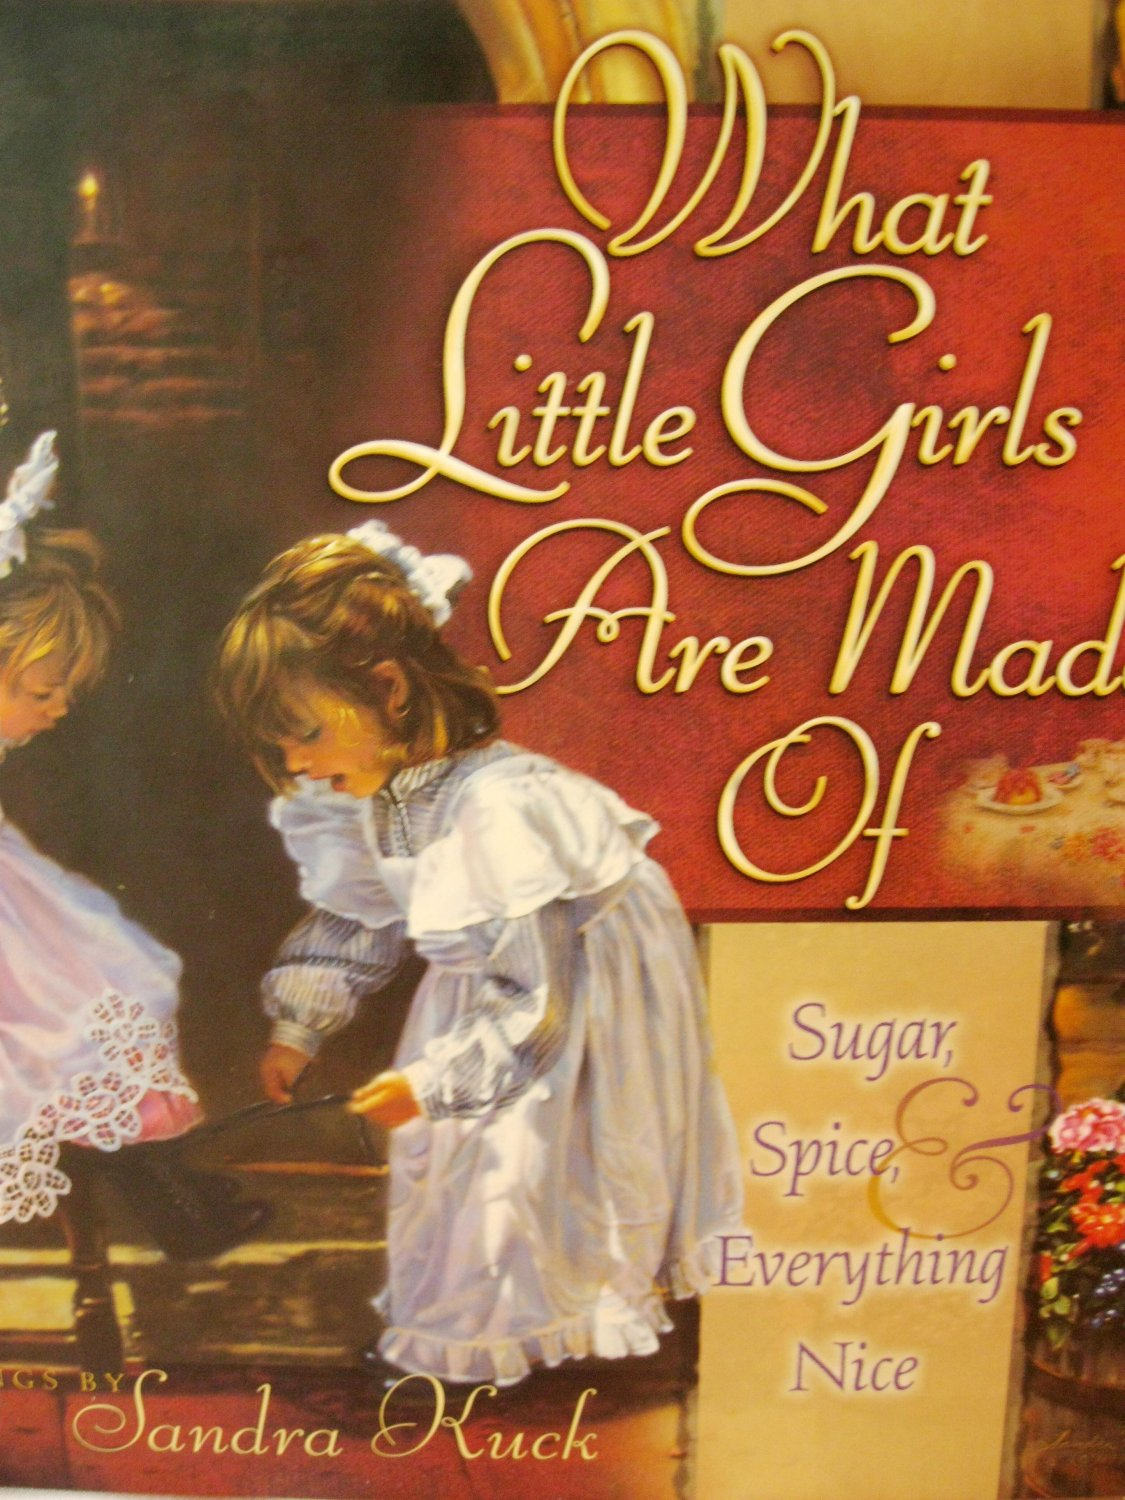 What Little Girls Are Made Of by Sandra Kuck